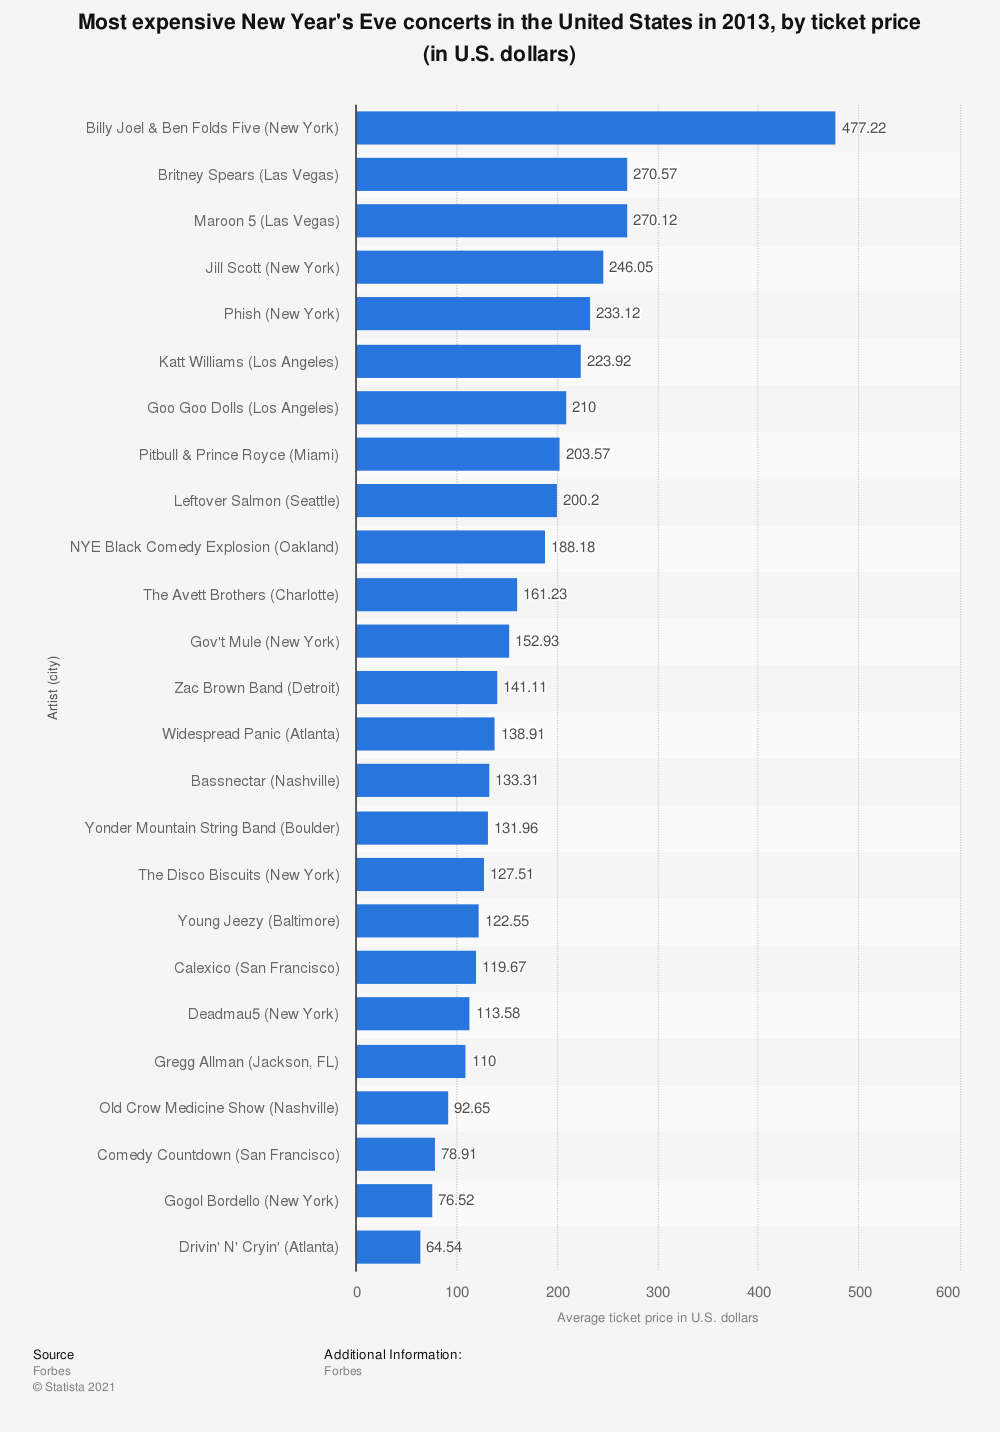 Statistic: Most expensive New Year's Eve concerts in the United States in 2013, by ticket price (in U.S. dollars) | Statista